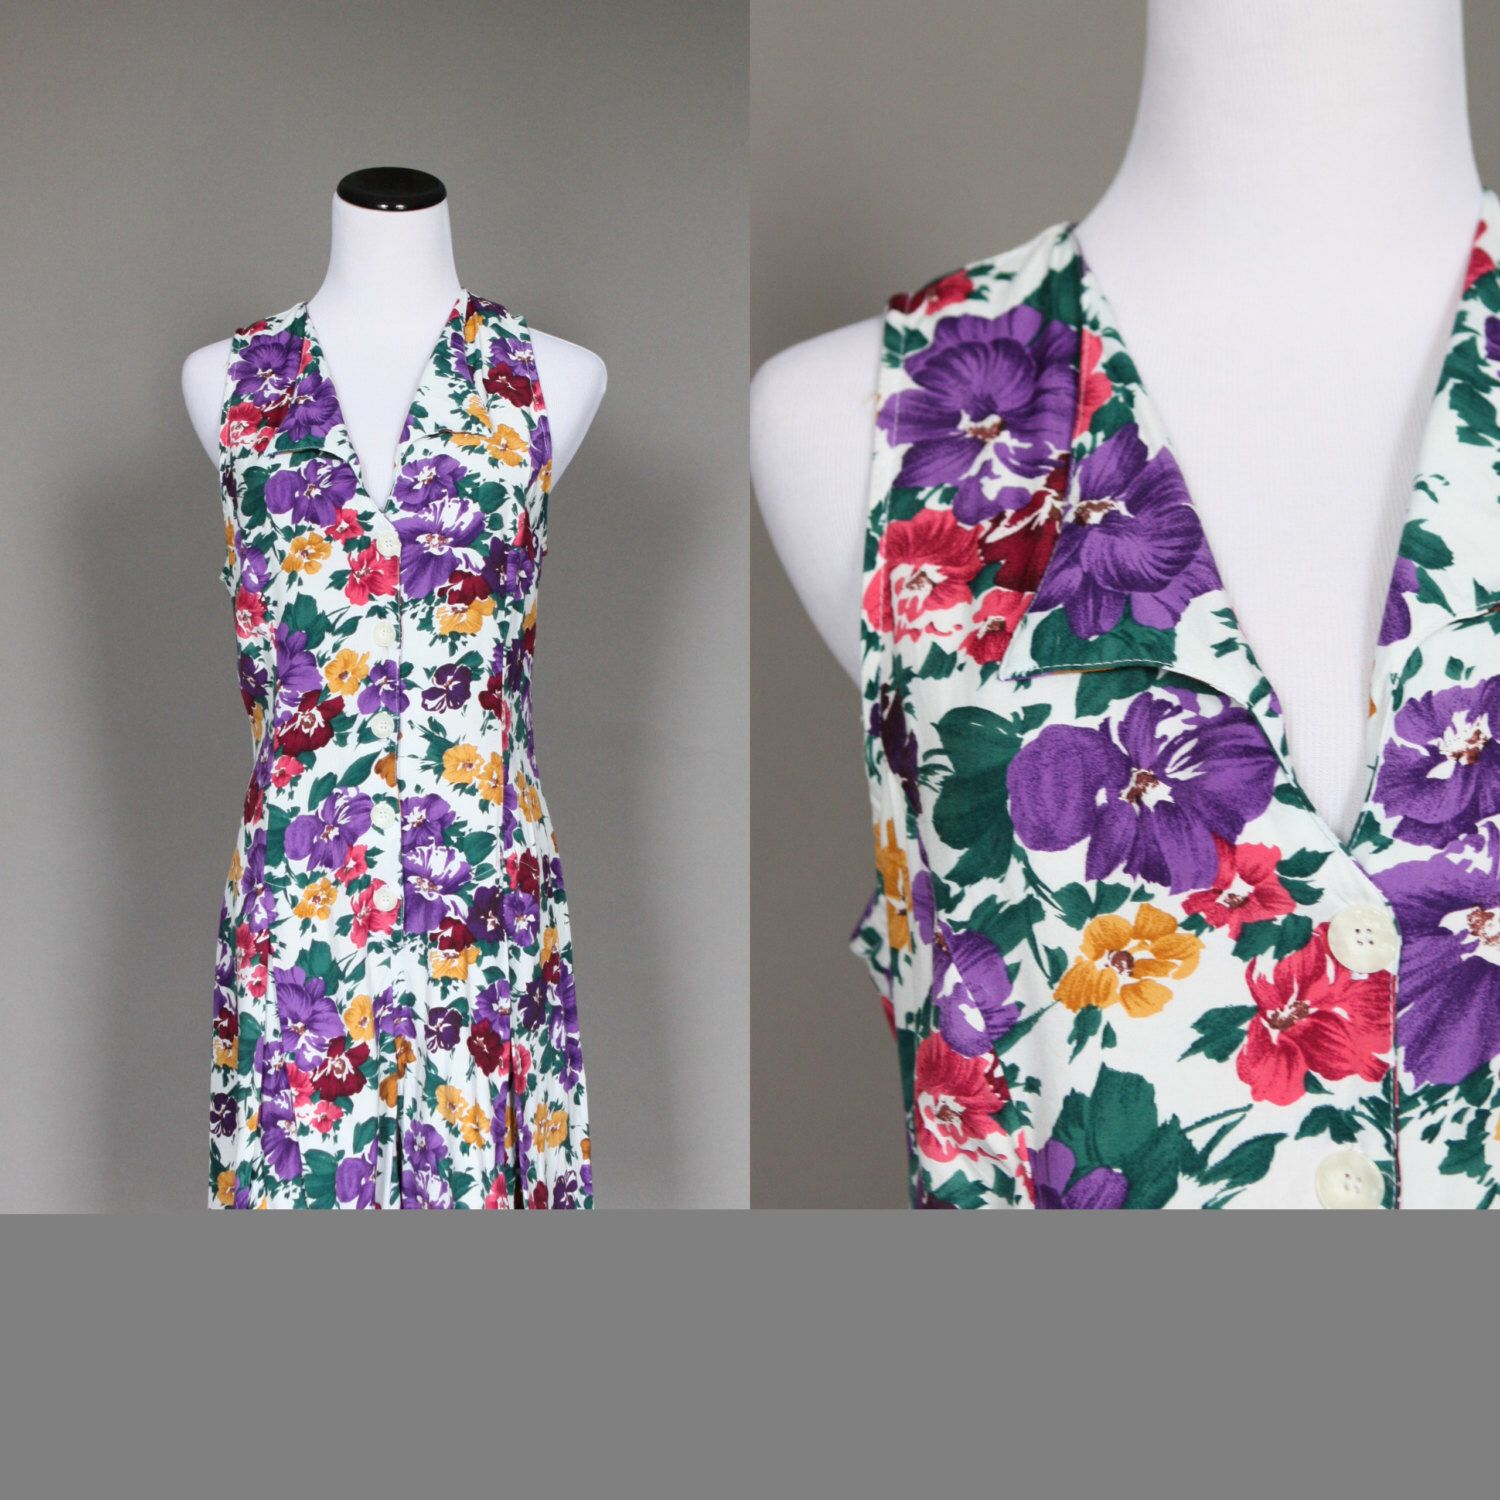 1990s Romper Vintage 90s Floral Rayon Playsuit White Purple Pink Green and Yellow Sleeveless Large by persnicketyvintage on Etsy https://www.etsy.com/listing/204756264/1990s-romper-vintage-90s-floral-rayon